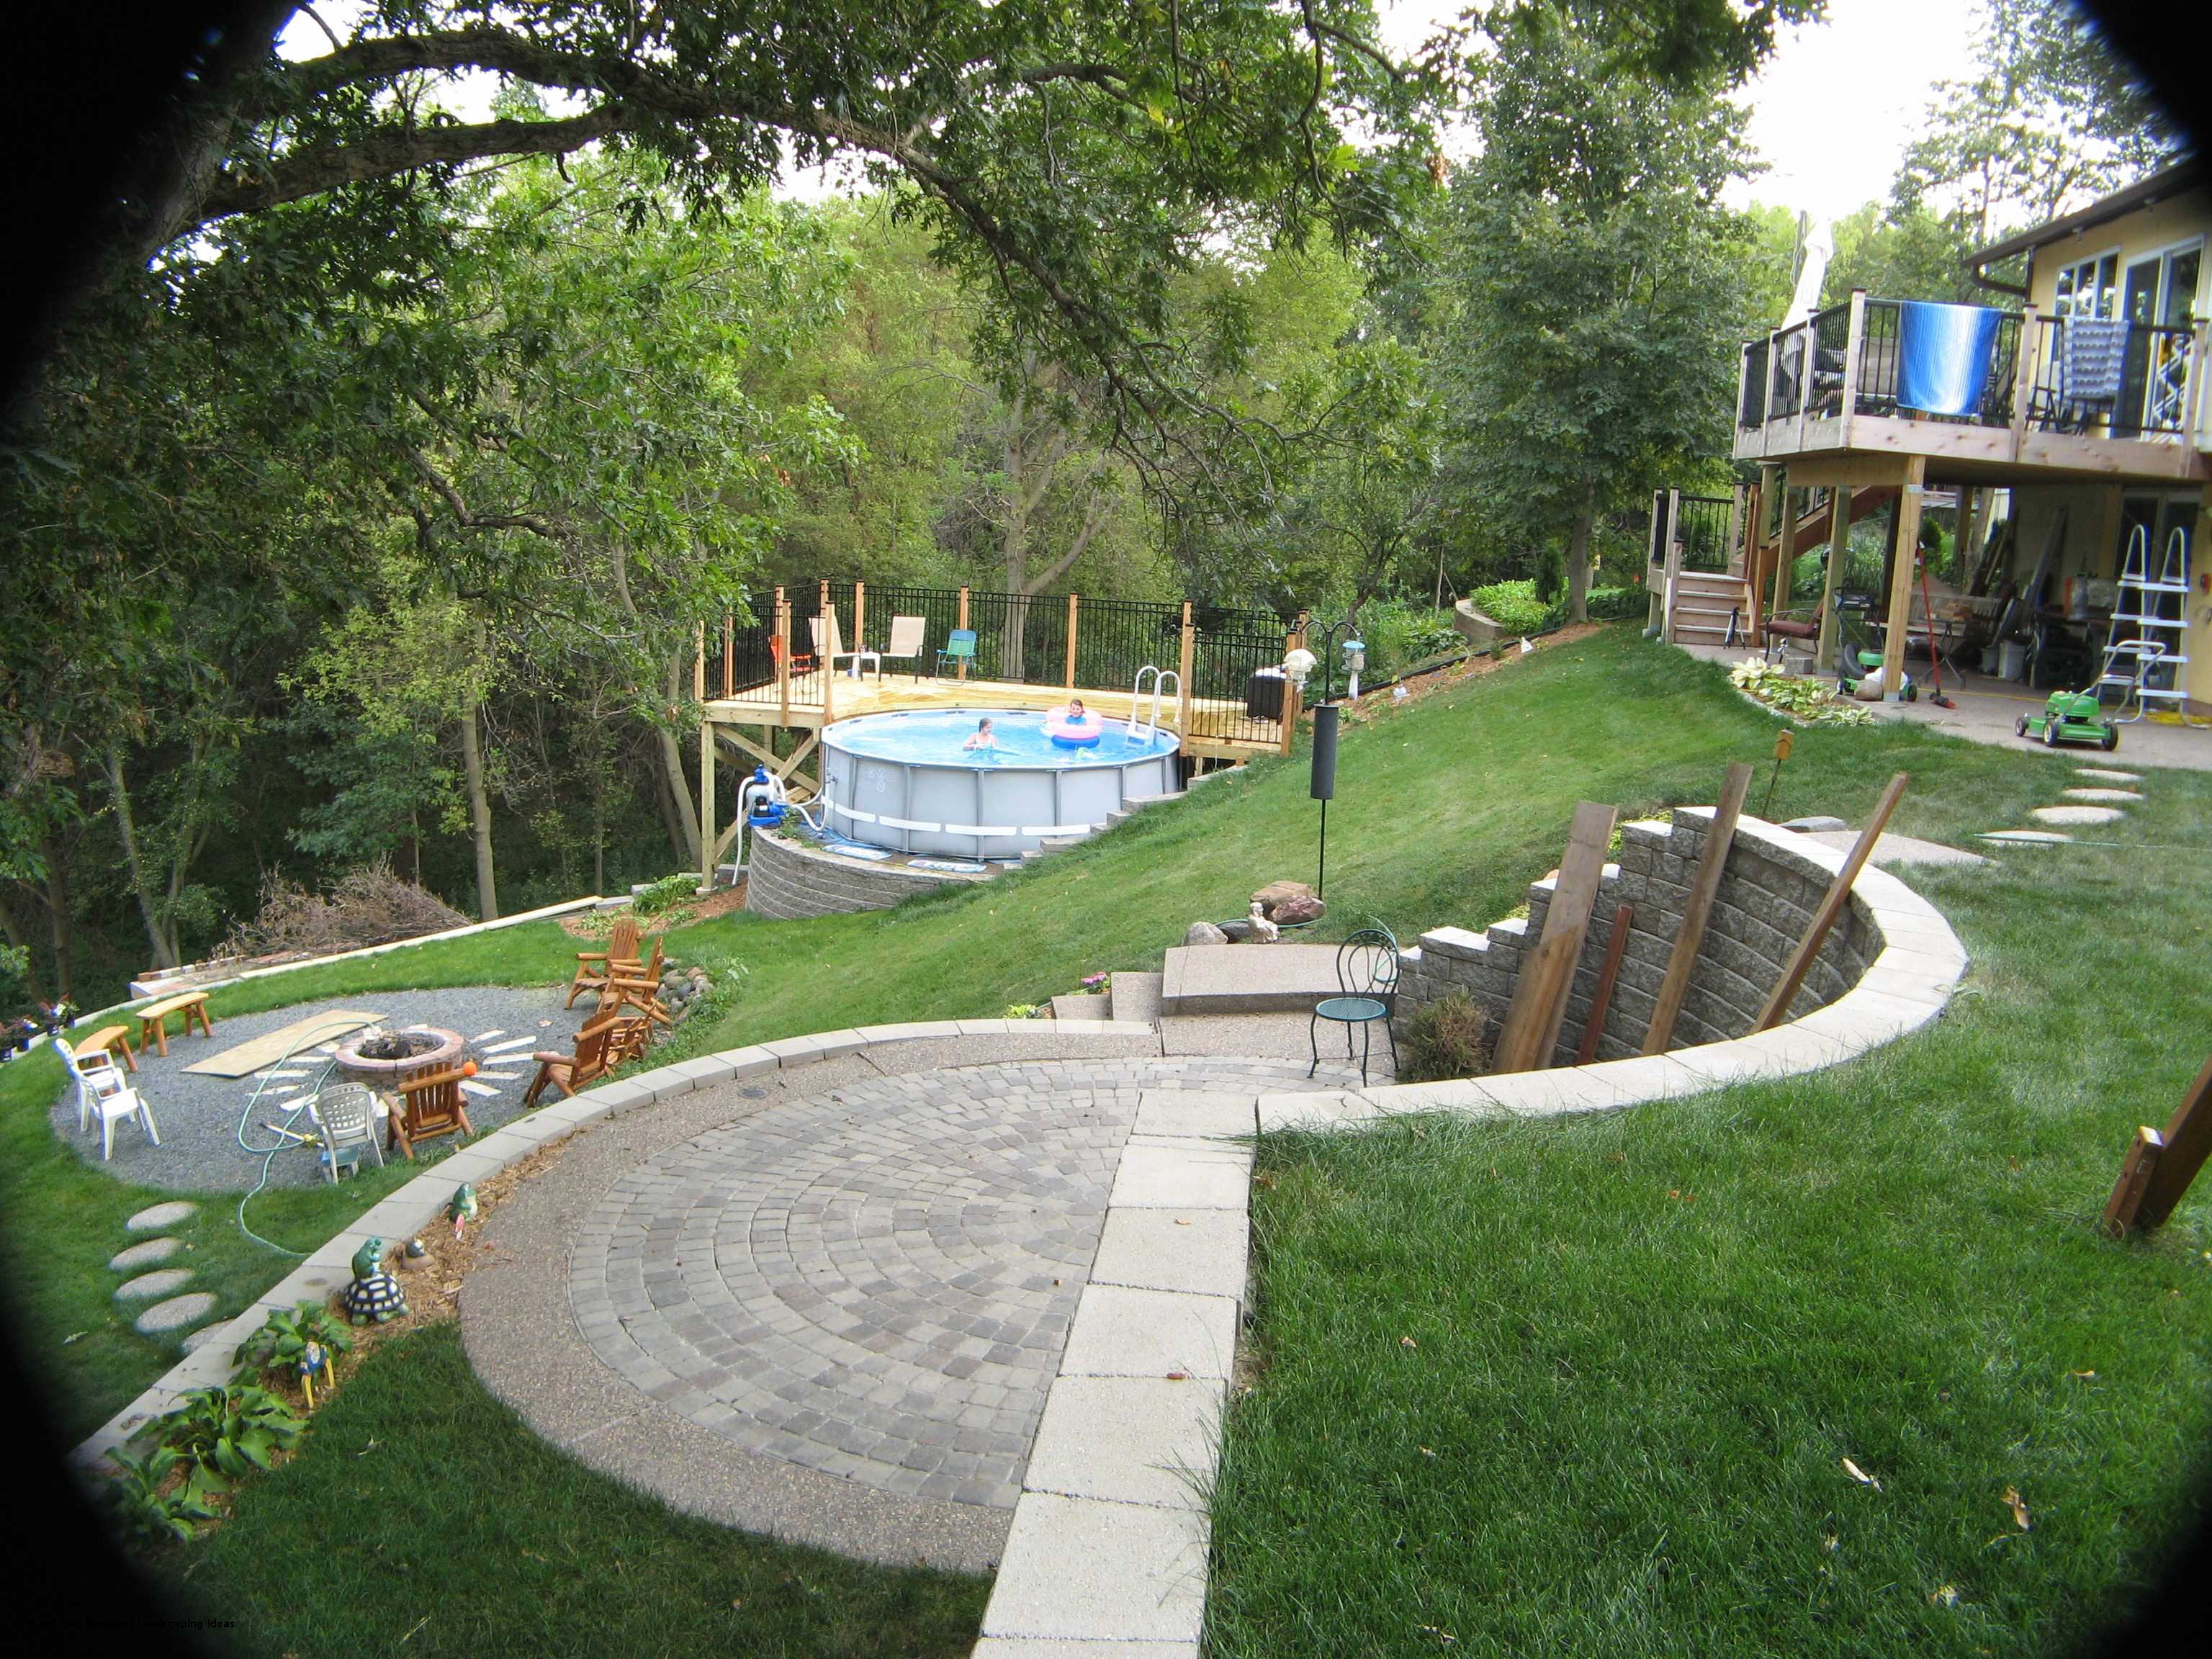 Patio Designs For Sloped Yards Stunning How To Level A Hill In with regard to 13 Awesome Concepts of How to Makeover Landscaping Ideas For A Hill In Backyard